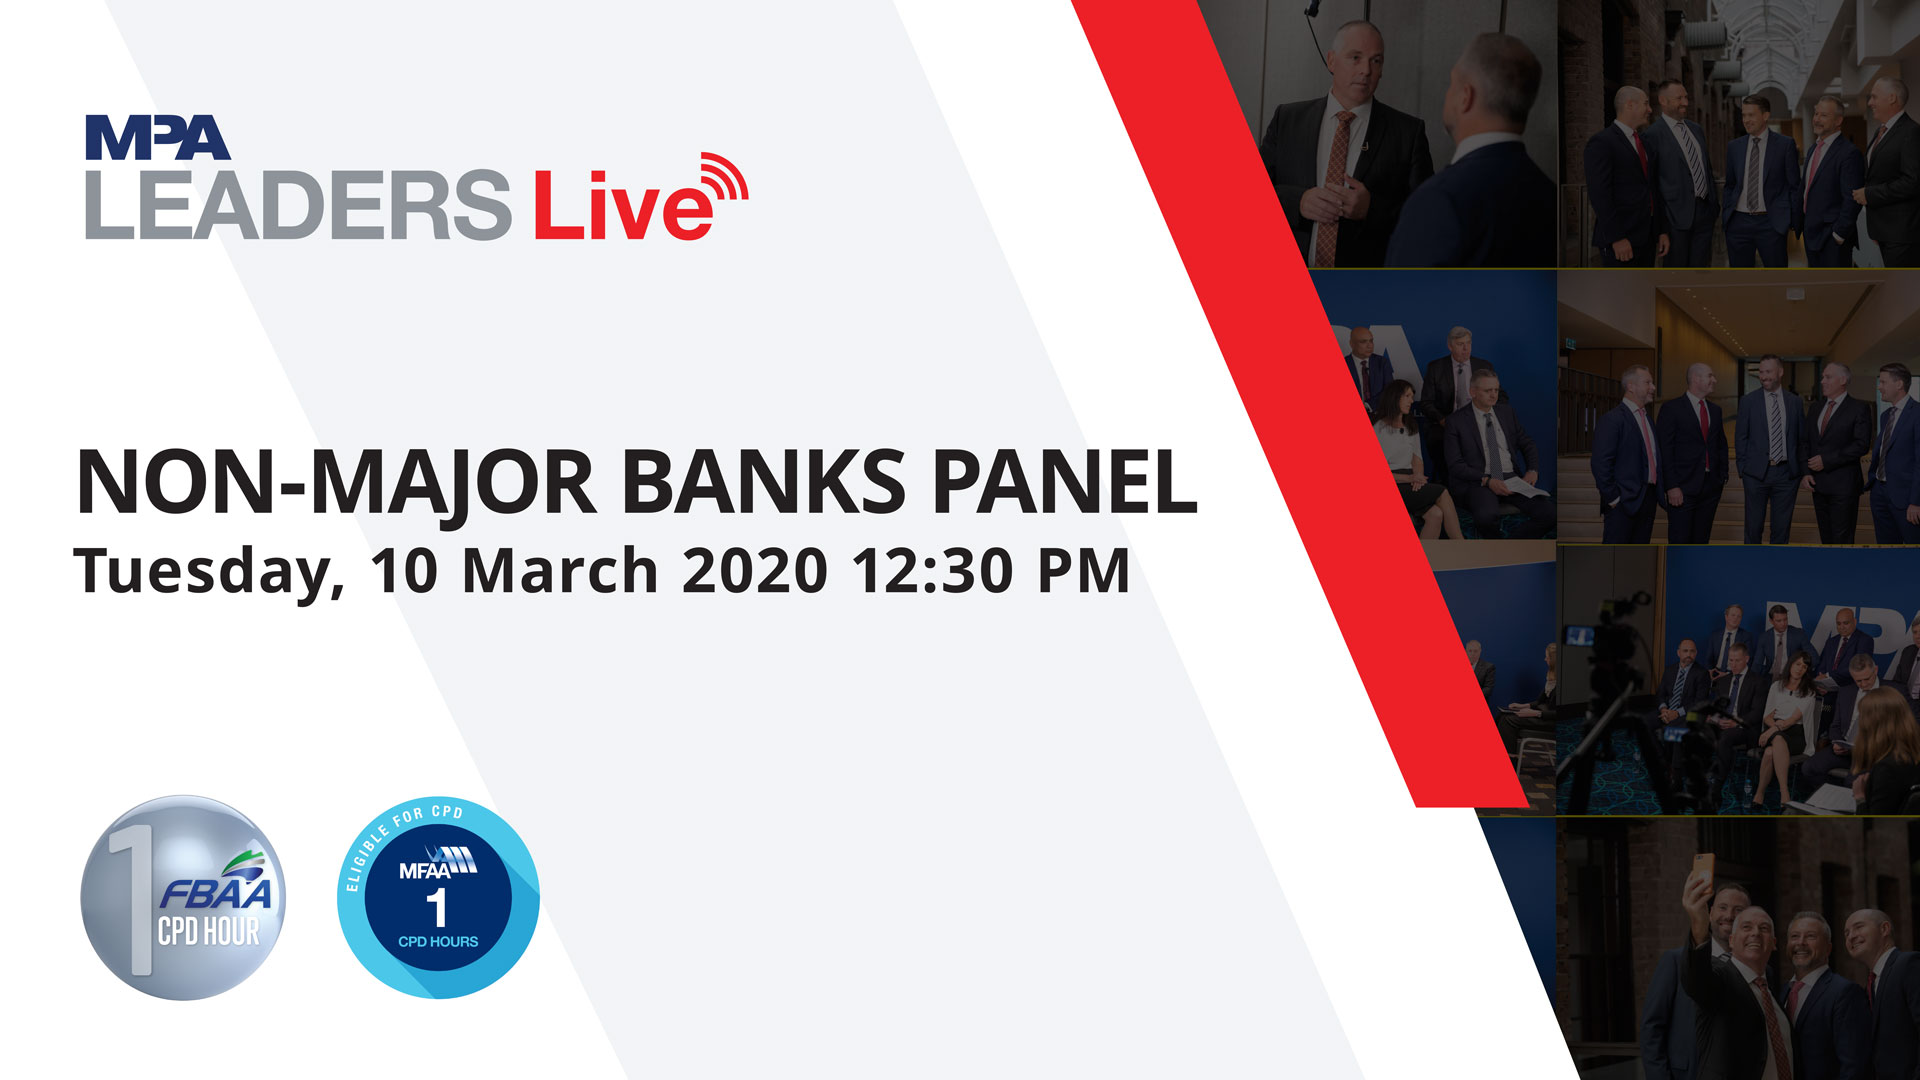 MPA Leaders Live: Non-Major Banks Panel 2020